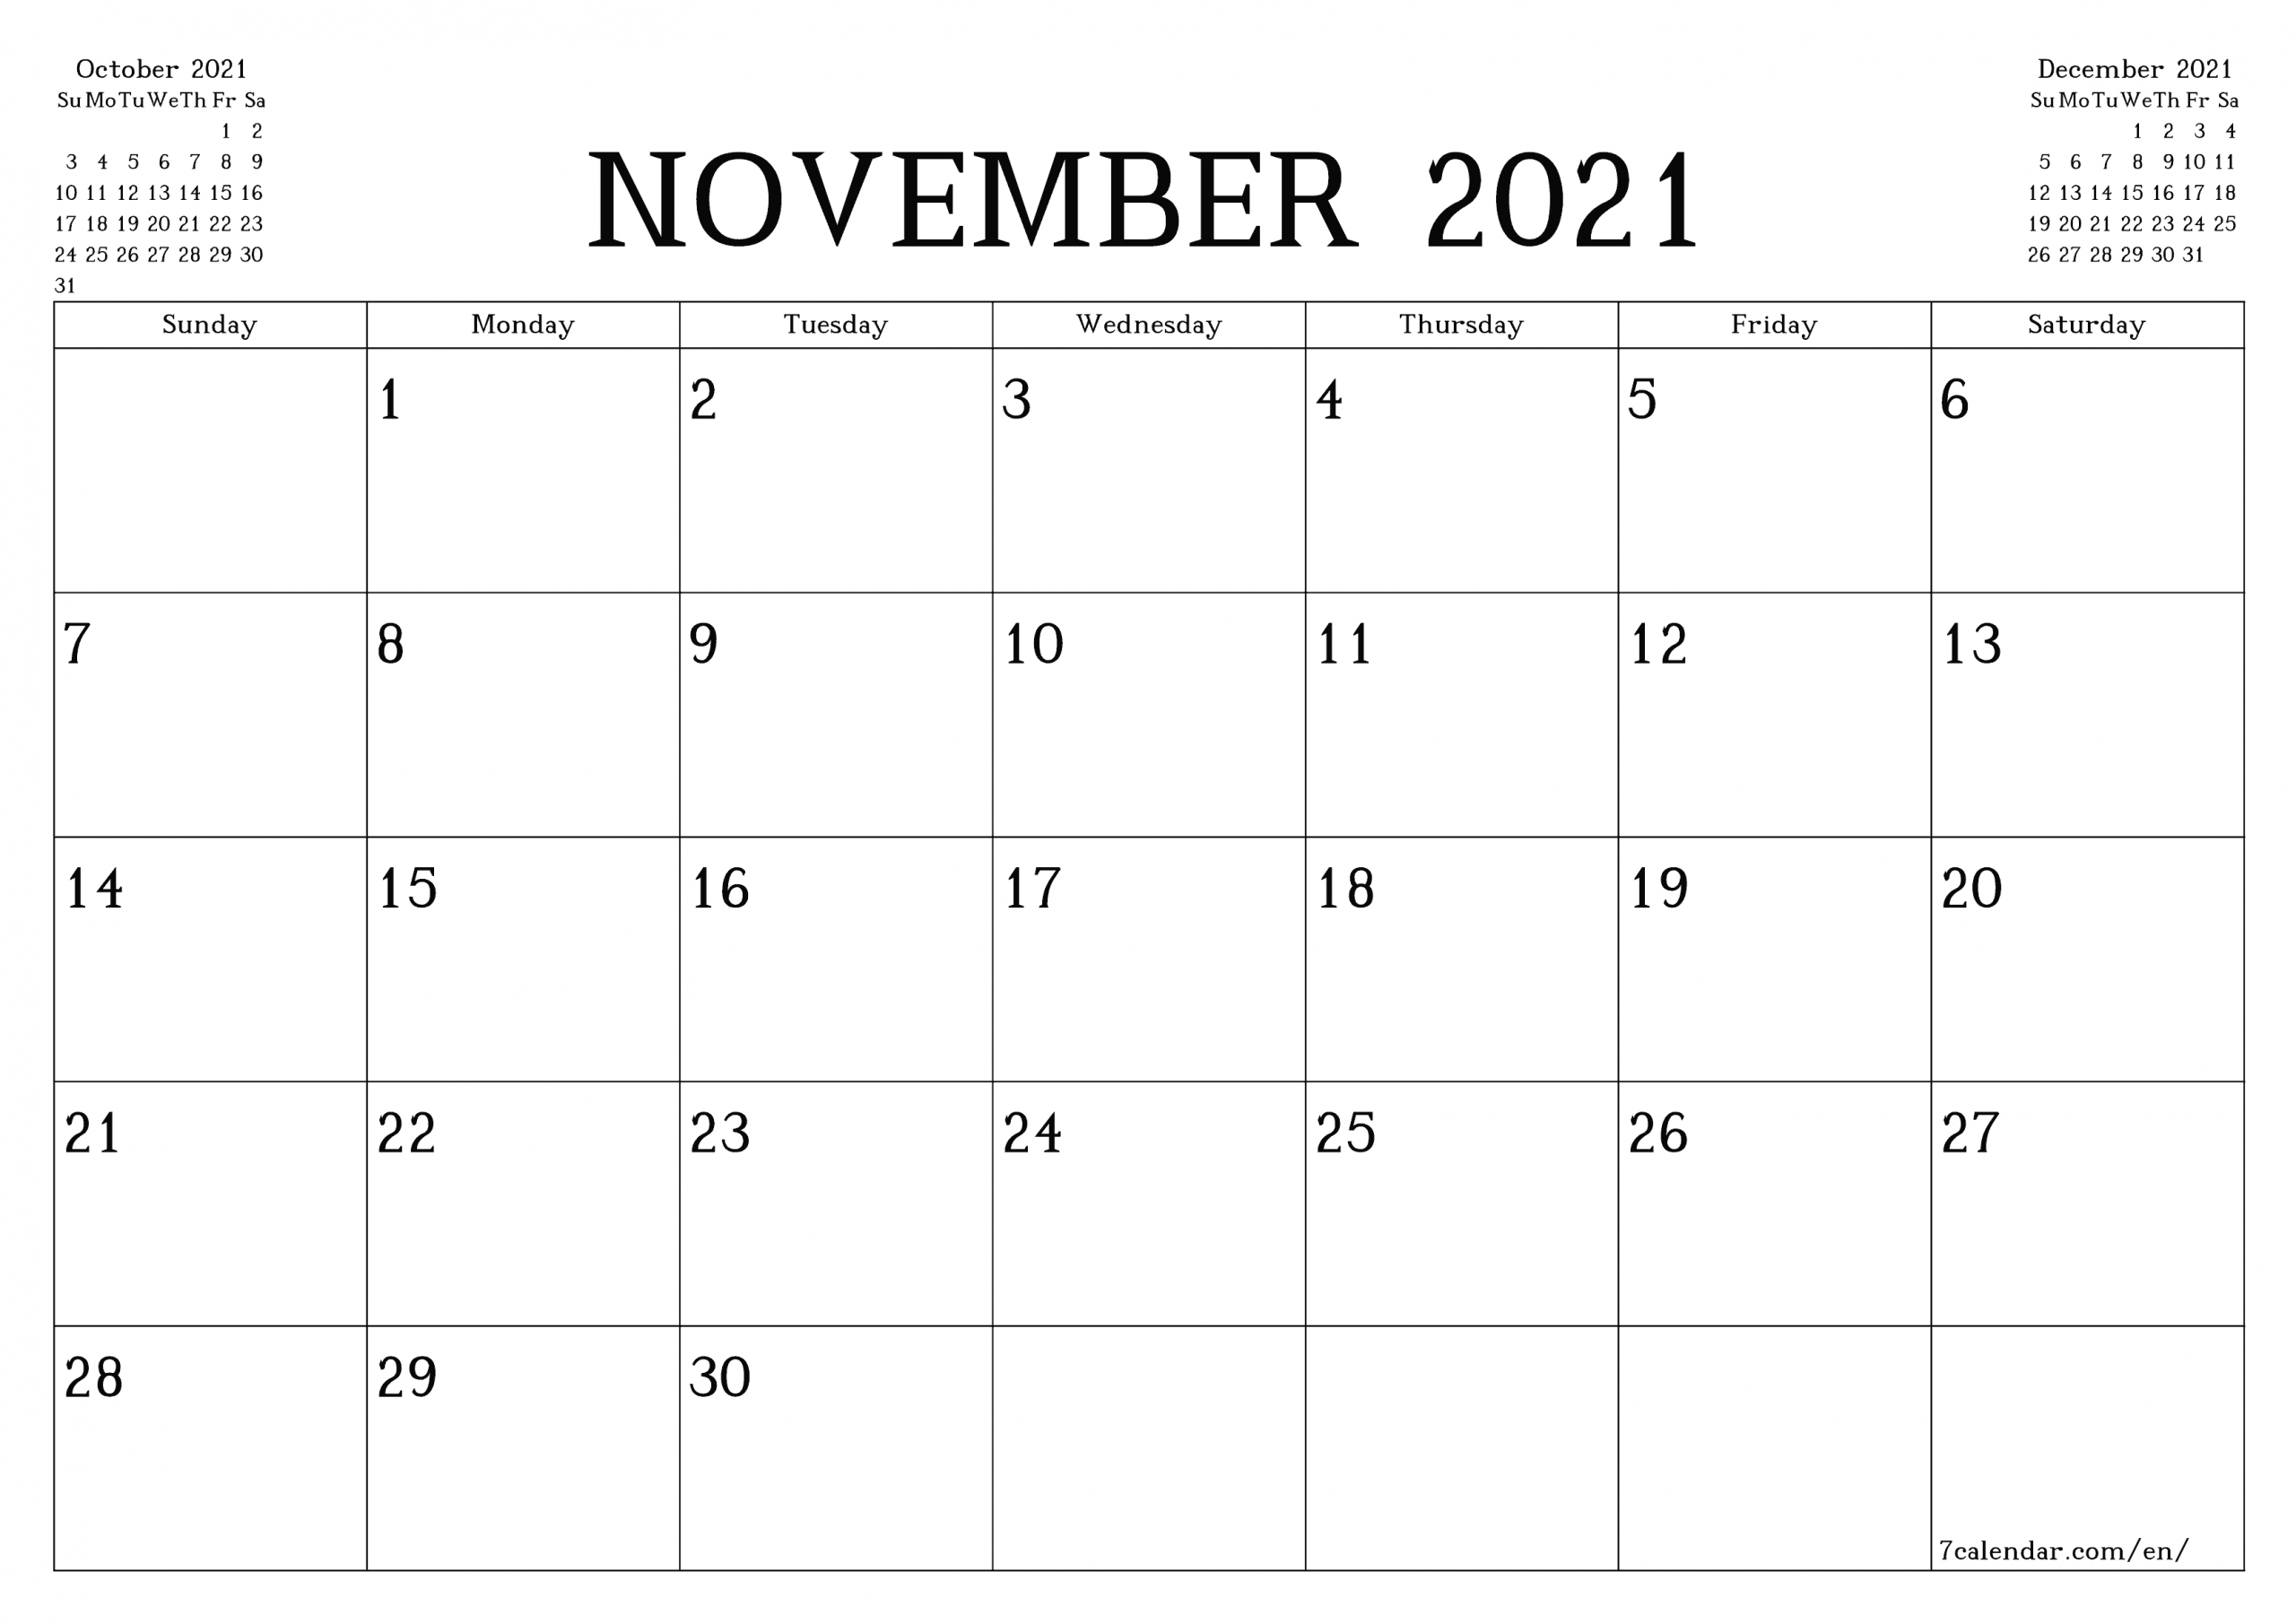 Free Printable Blank Monthly Calendar And Planner For November 2021 - A4, A5 And A3 Pdf And Png-2021 4 Shift Calendar